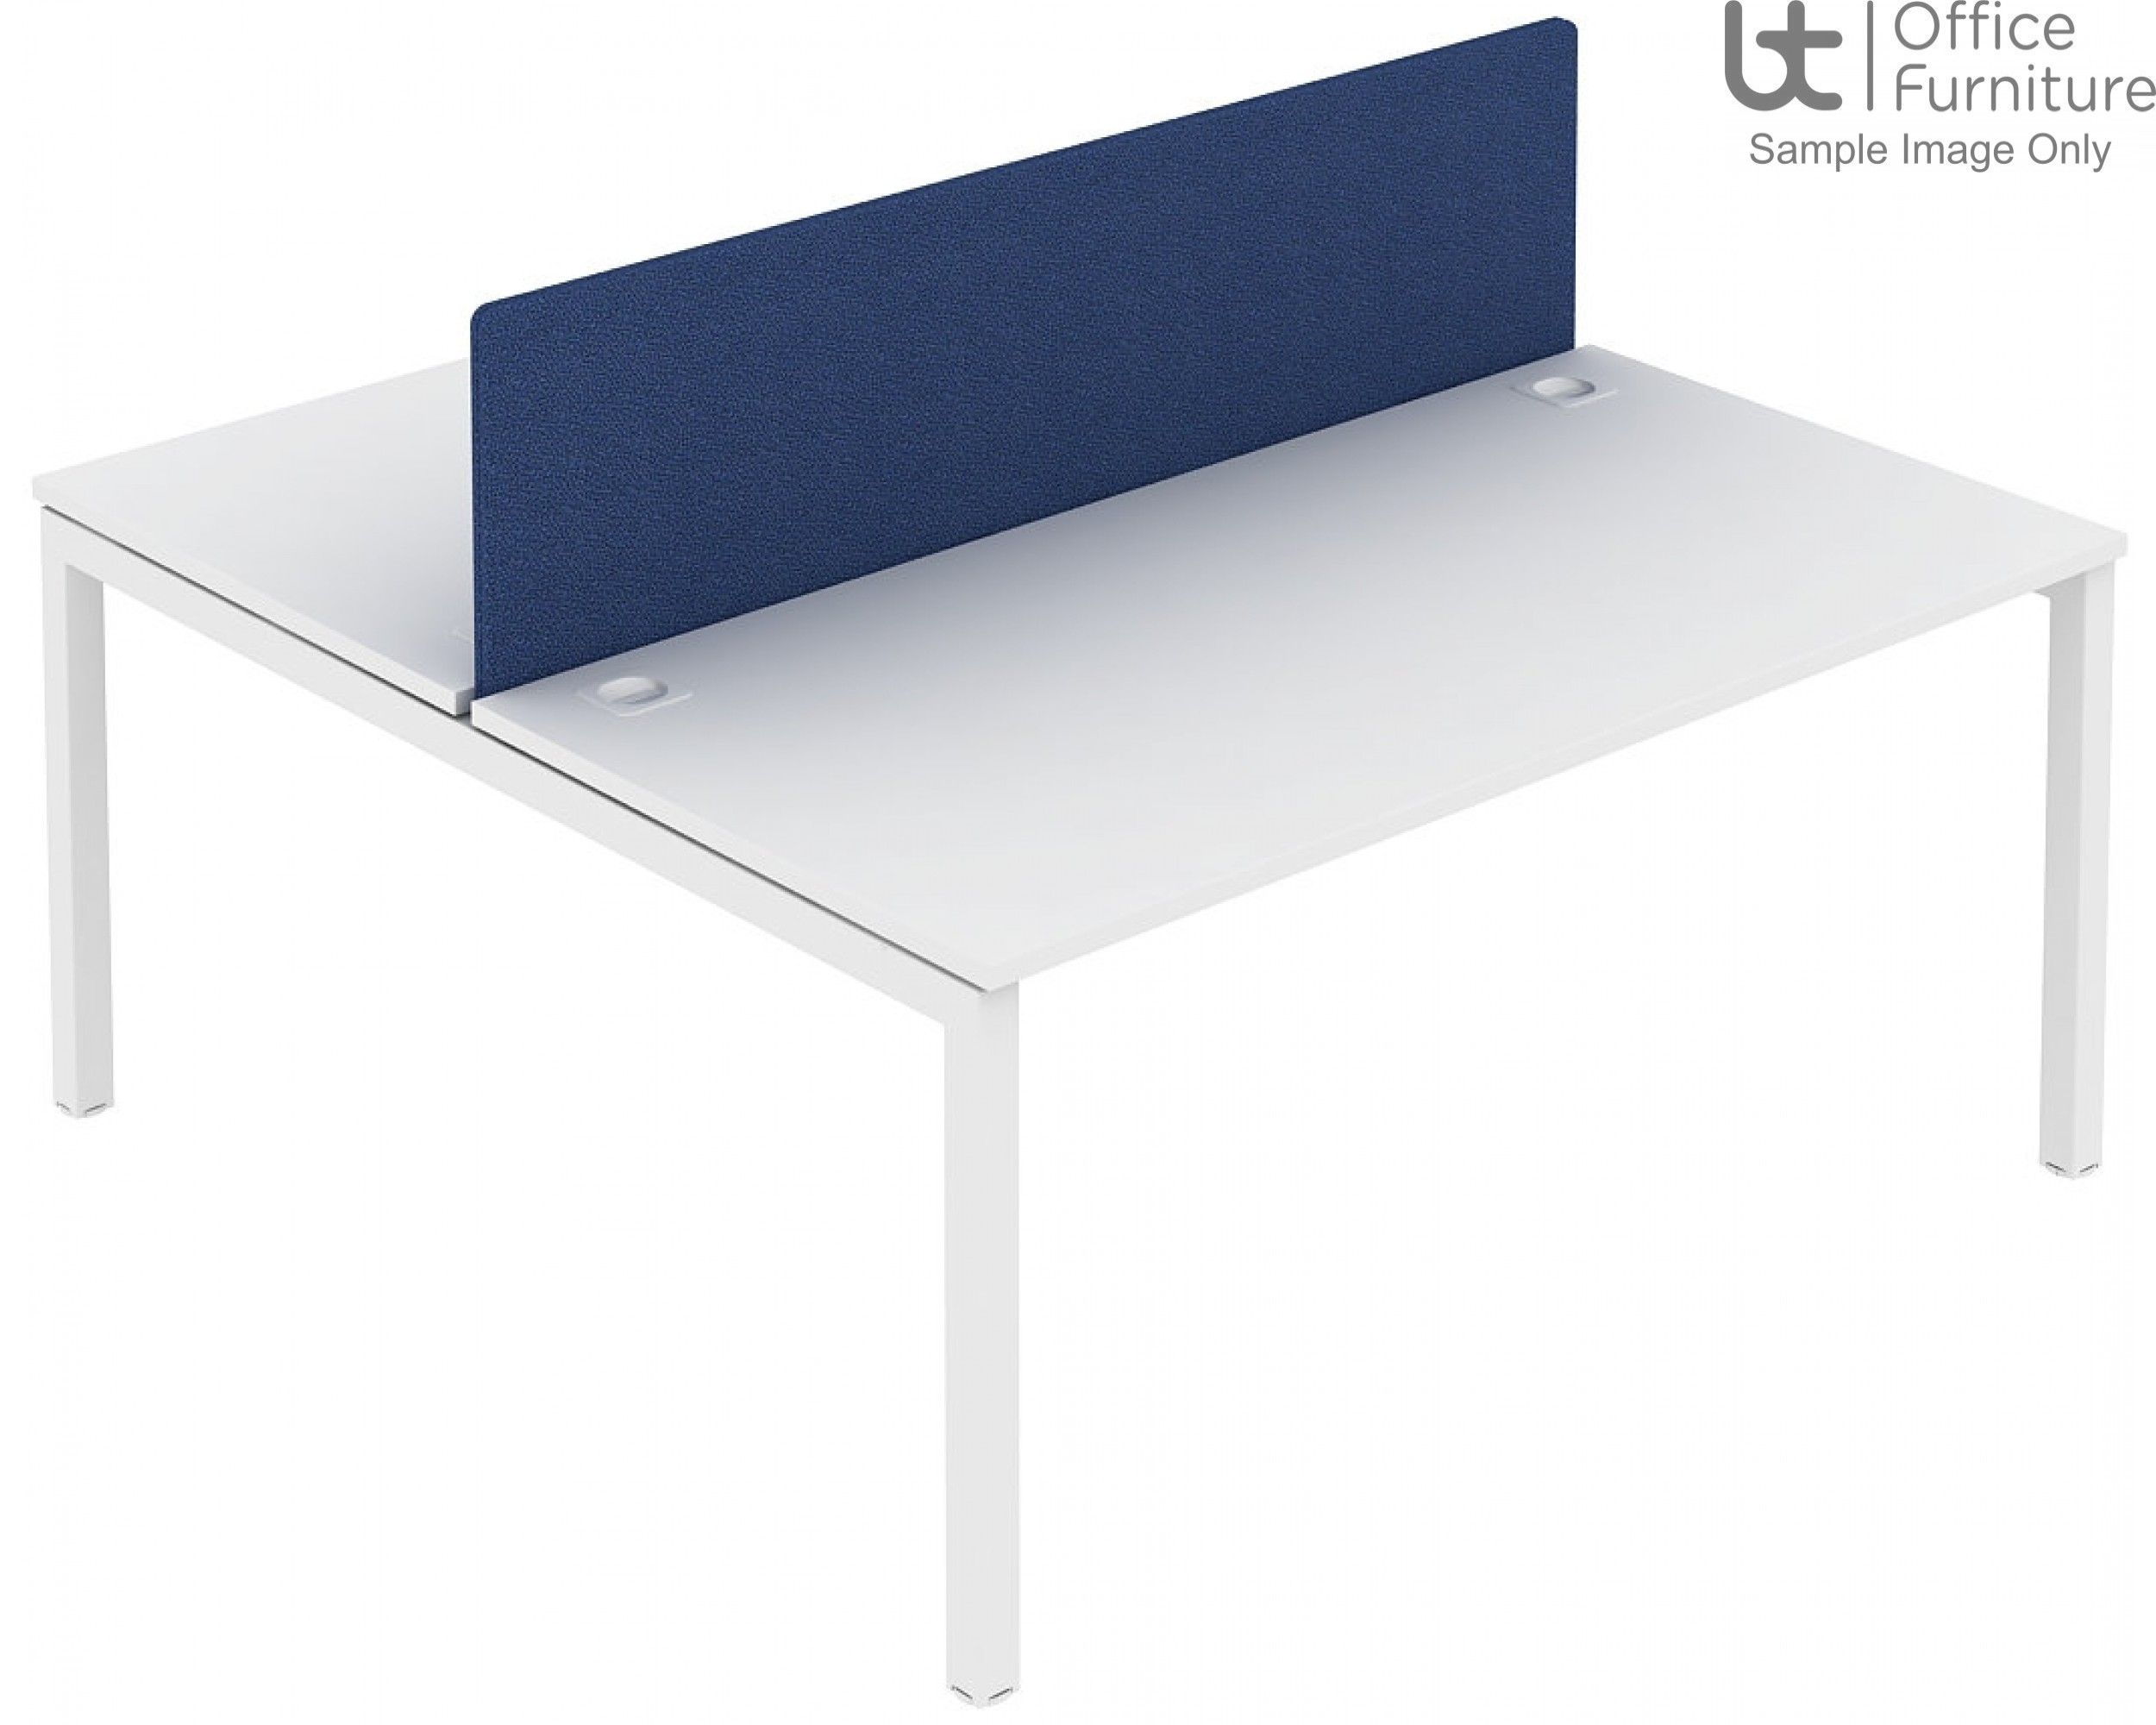 Elite Matrix Screen - Acoustic Fabric System Screen For Double Desk